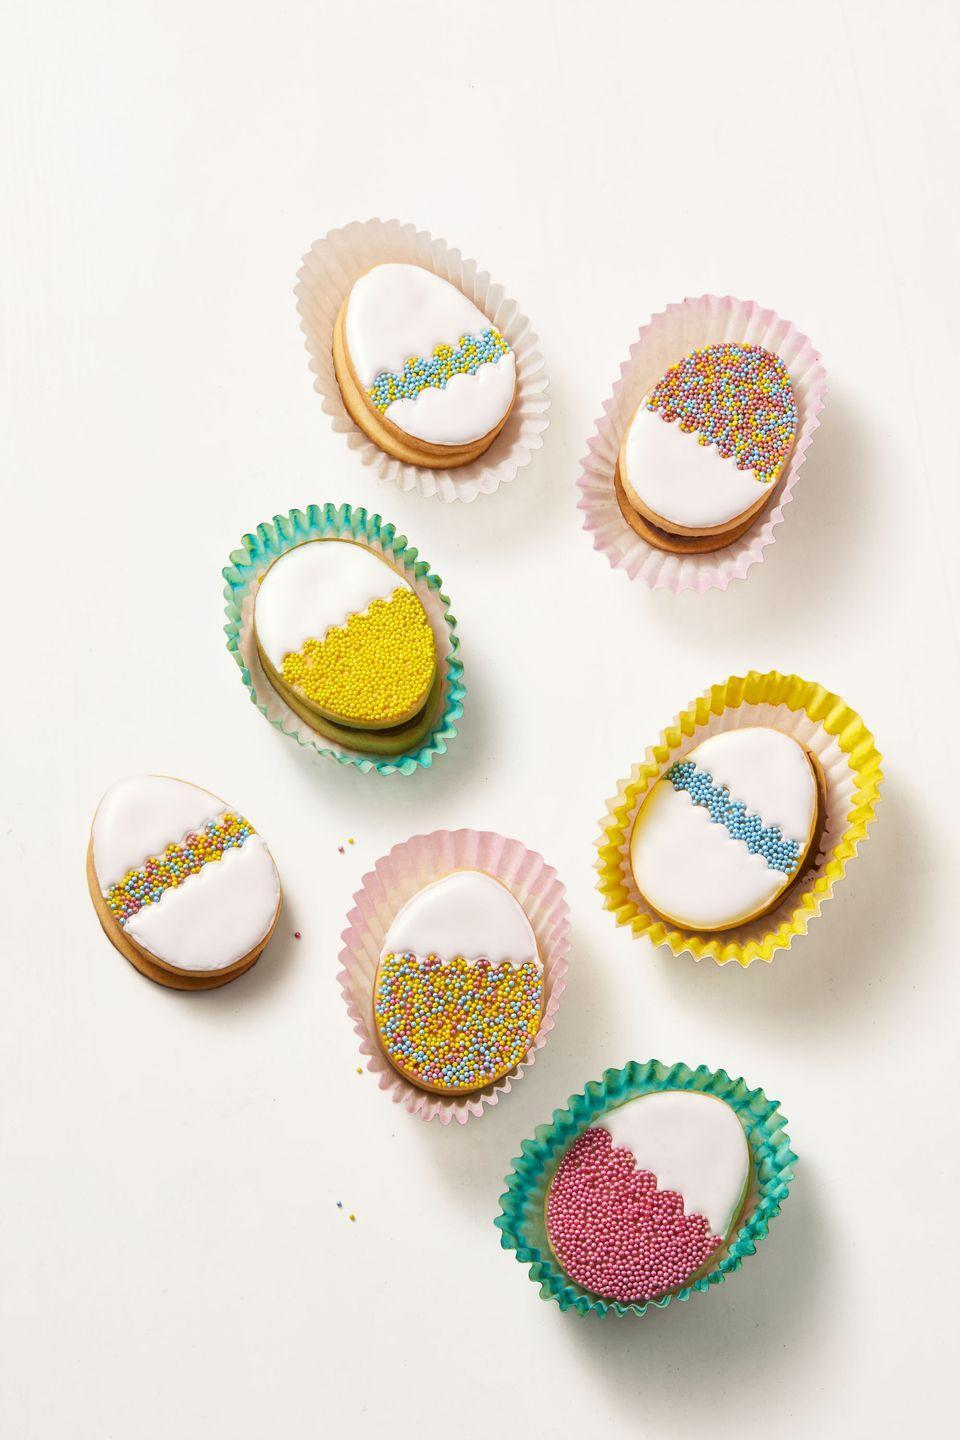 "<p>Make your favorite batch of egg-shaped sugar cookies and then sandwich them together with buttercream or chocolate-hazelnut spread. The rest is up to you: Decorate 'em with royal icing and nonpareils. </p><p><em><a href=""https://www.goodhousekeeping.com/food-recipes/a6874/sugar-cookies-4477/"" rel=""nofollow noopener"" target=""_blank"" data-ylk=""slk:Get the recipe for Easy Sugar Cookies »"" class=""link rapid-noclick-resp"">Get the recipe for Easy Sugar Cookies »</a></em></p>"